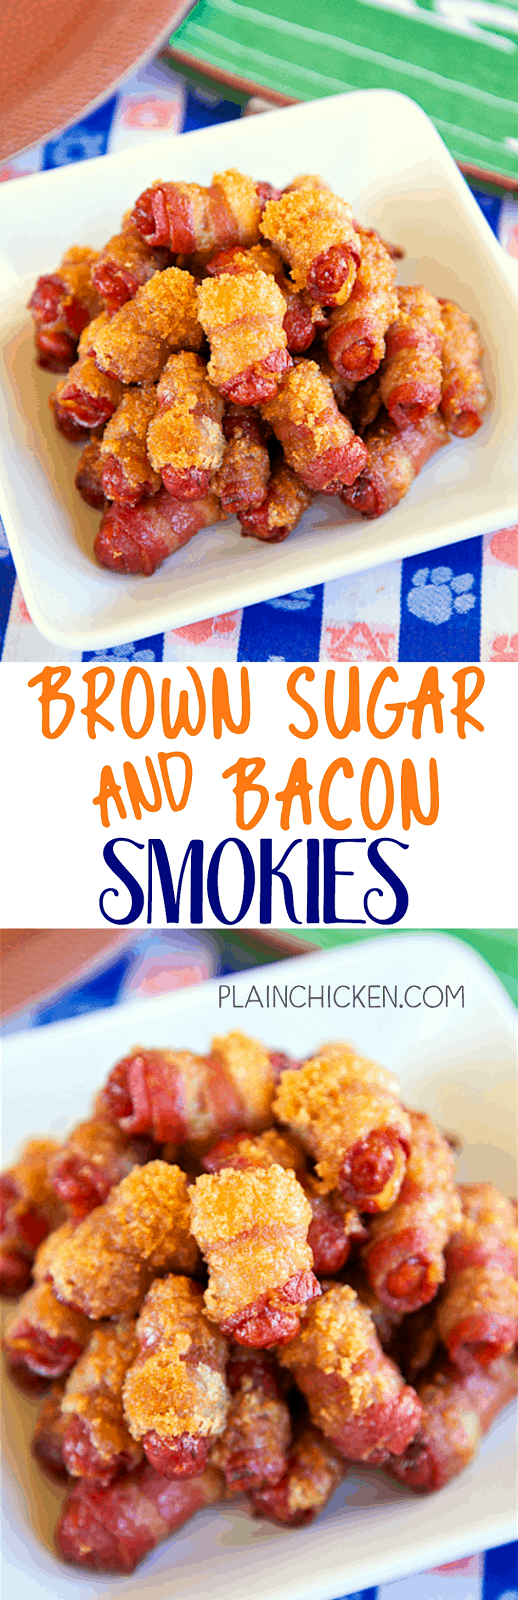 Brown Sugar and Bacon Smokies - only 3 ingredients and ready in under 30 minutes! These things fly off the plate at parties. I always double the recipe. SO GOOD!!!